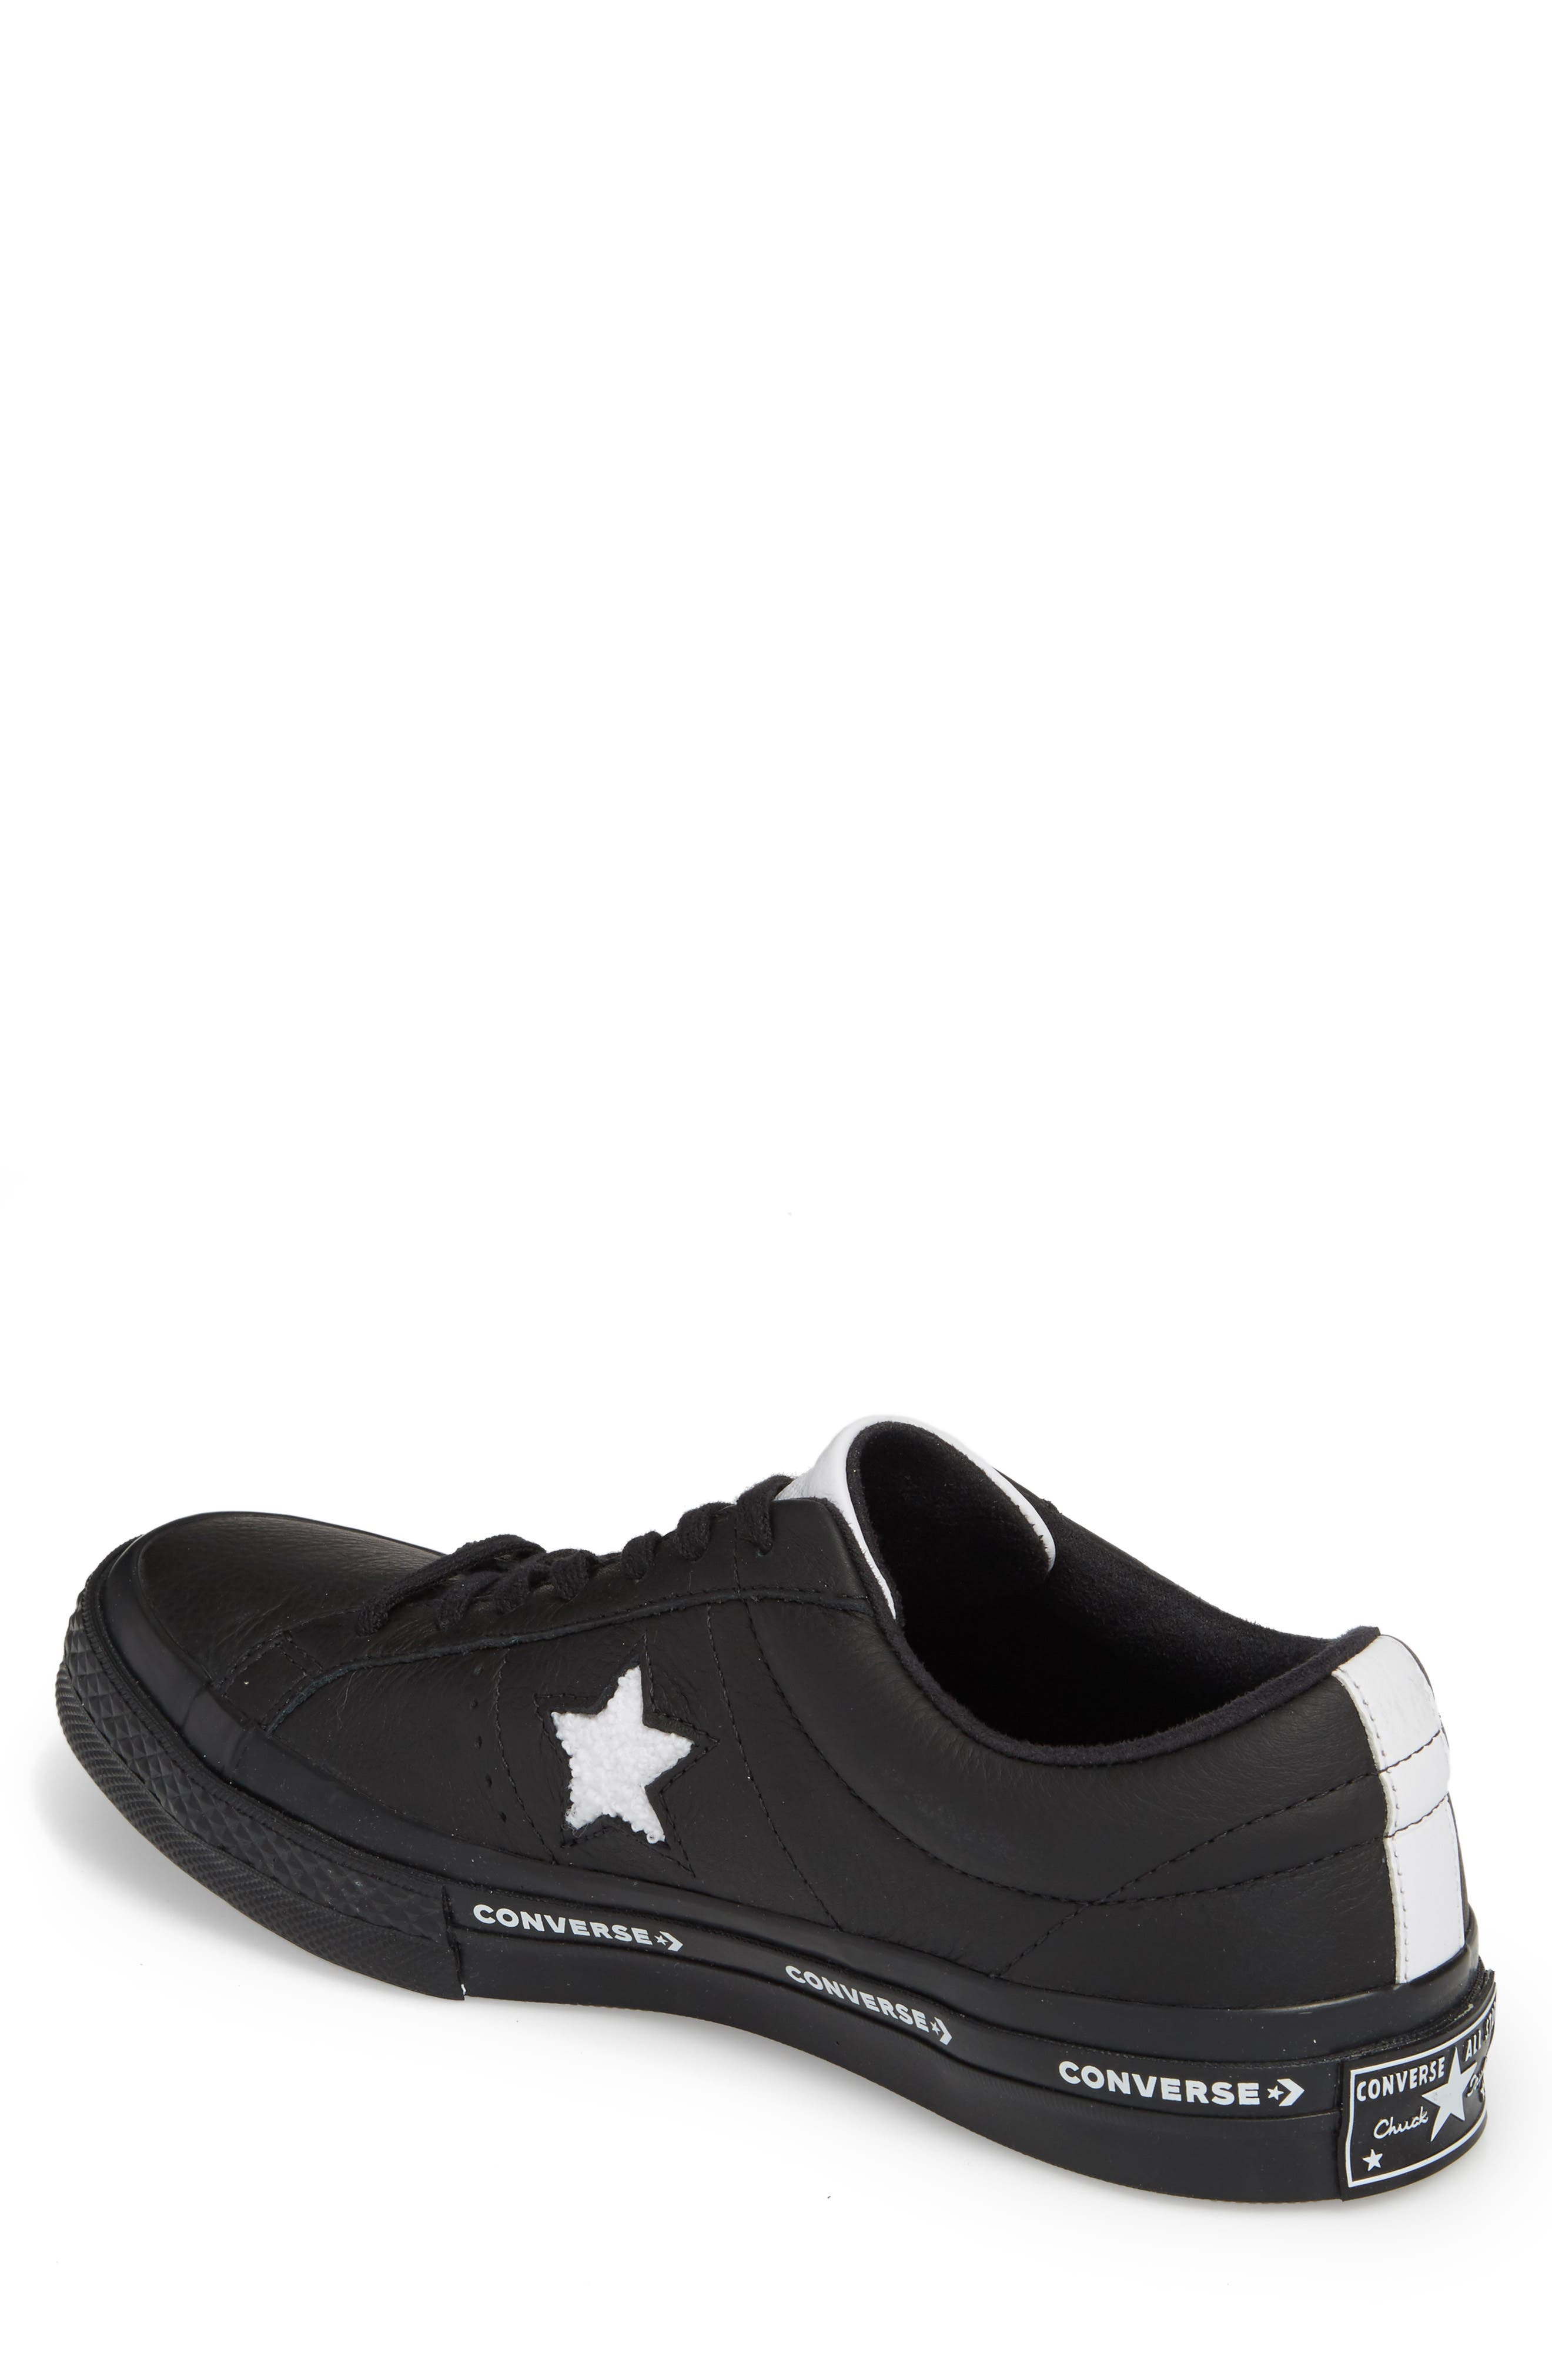 Chuck Taylor<sup>®</sup> One Star Pinstripe Sneaker,                             Alternate thumbnail 2, color,                             Black Leather